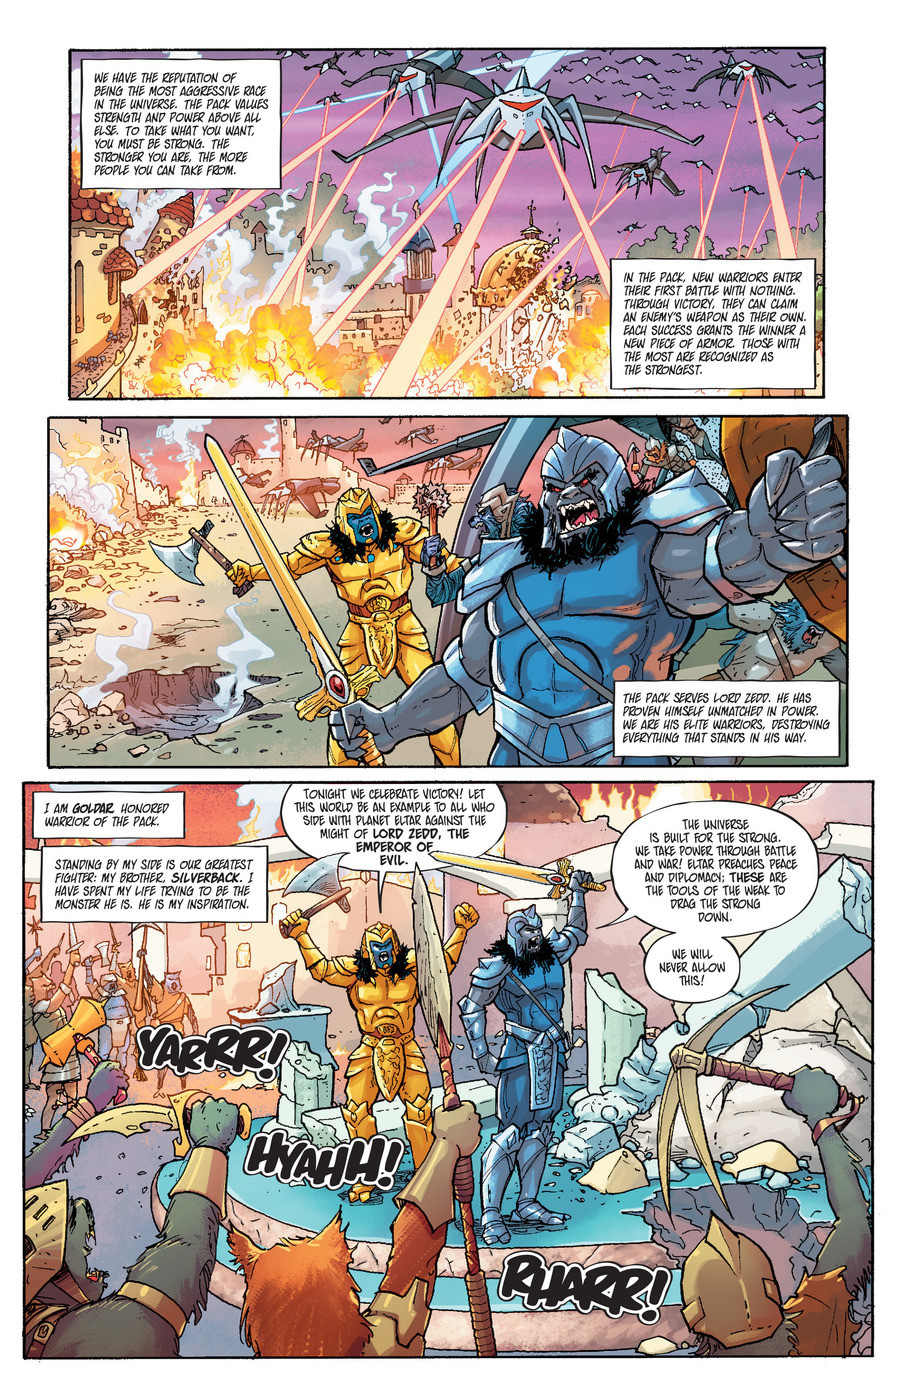 Go Go Power Rangers. Sauce is the Mighty Morphin' Power Rangers Annual... So is there a legitimate comic series or is this just part of a magazine?